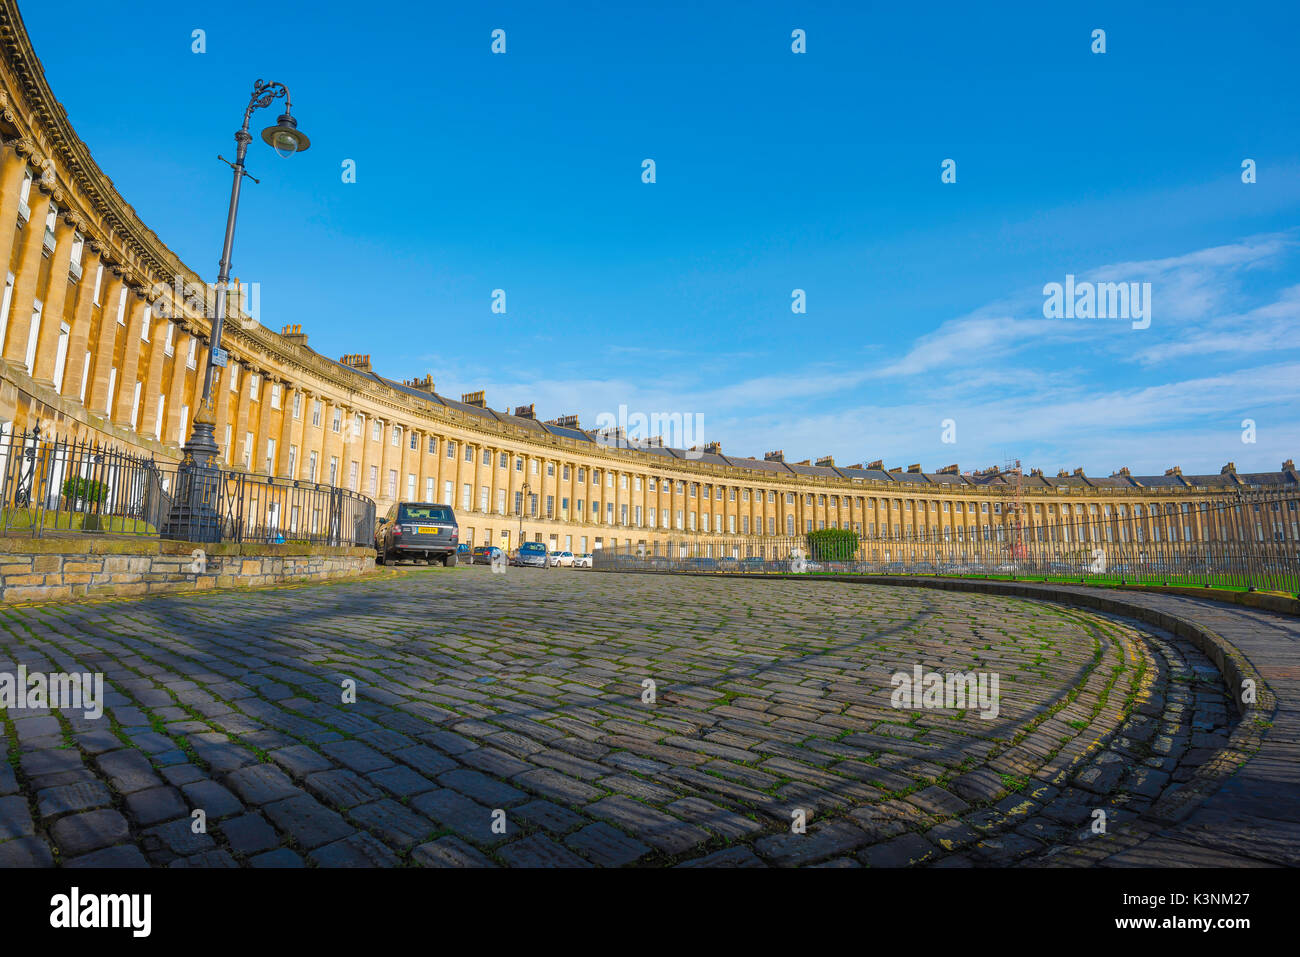 Bath Royal Crescent, view of the Royal Crescent - a row of 30 Georgian terraced houses laid out in a sweeping crescent in the centre of Bath, UK. - Stock Image